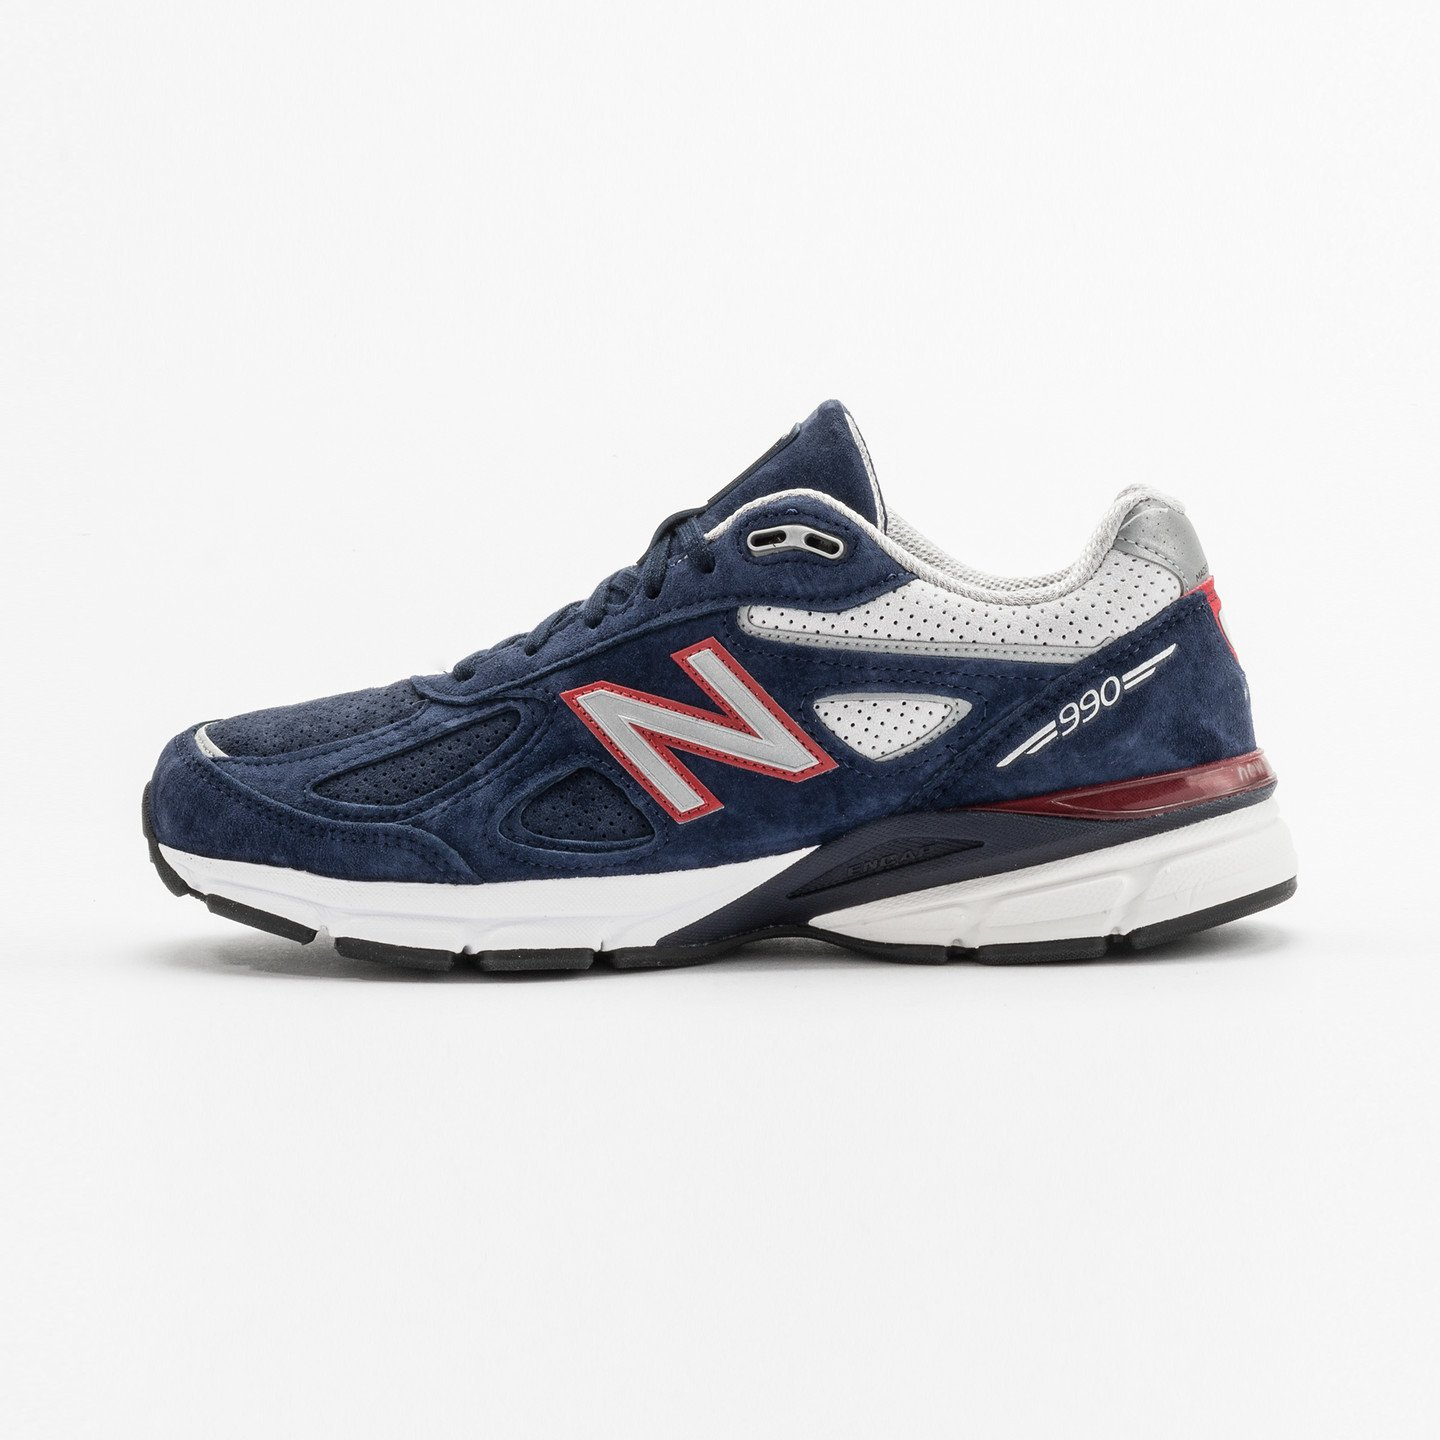 New Balance M990 V4 - Made in USA Blue / Red / Grey M990BR4